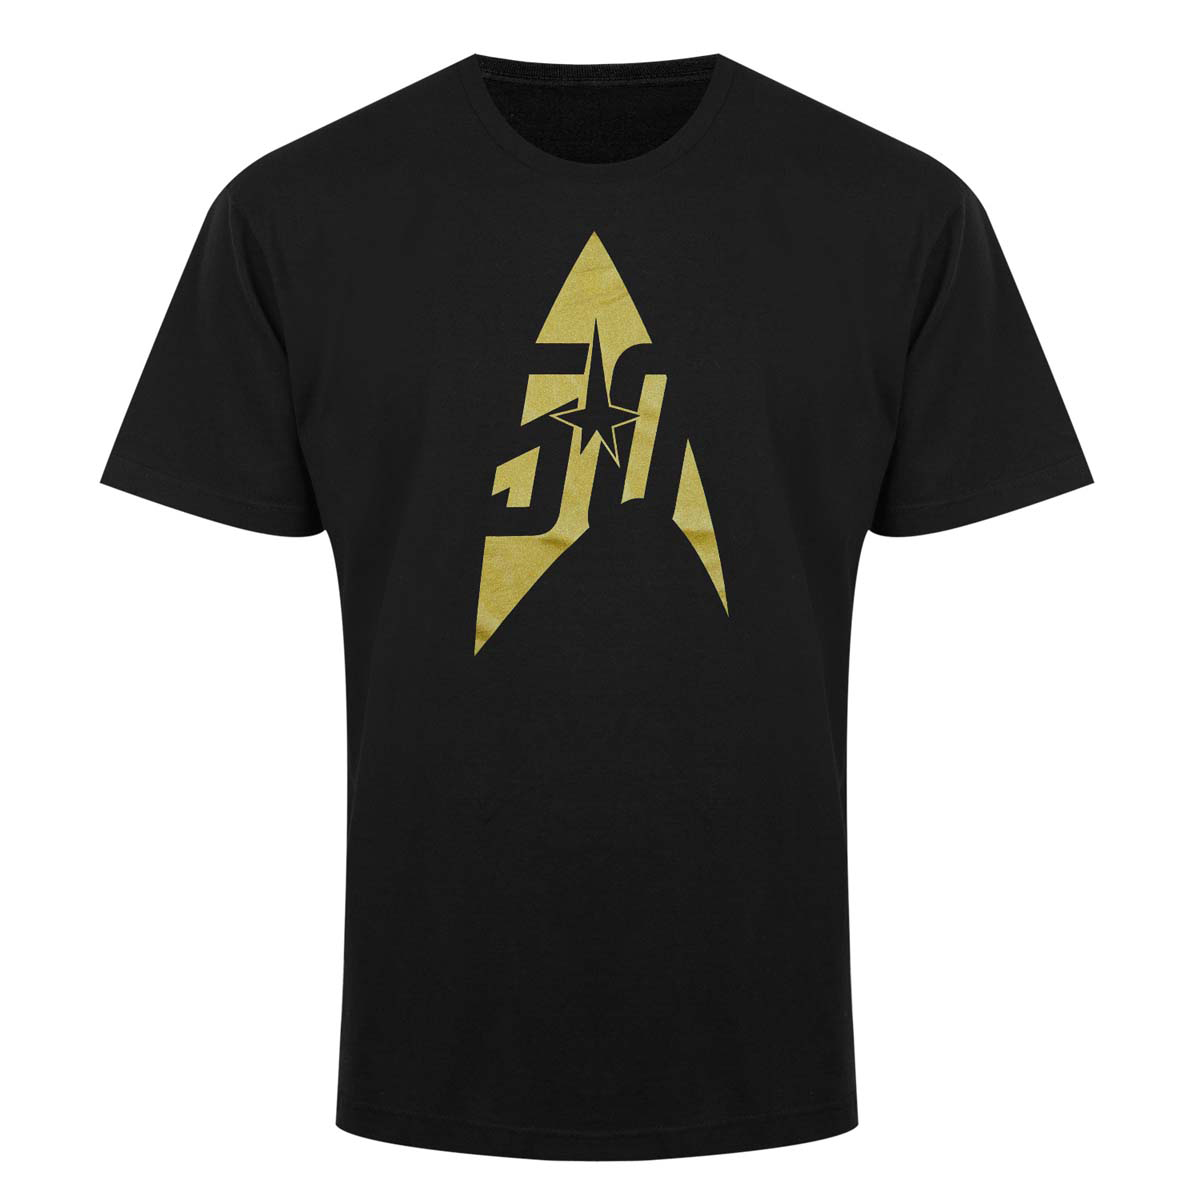 Star Trek 50th Anniversary Gold Delta T-Shirt [Black]